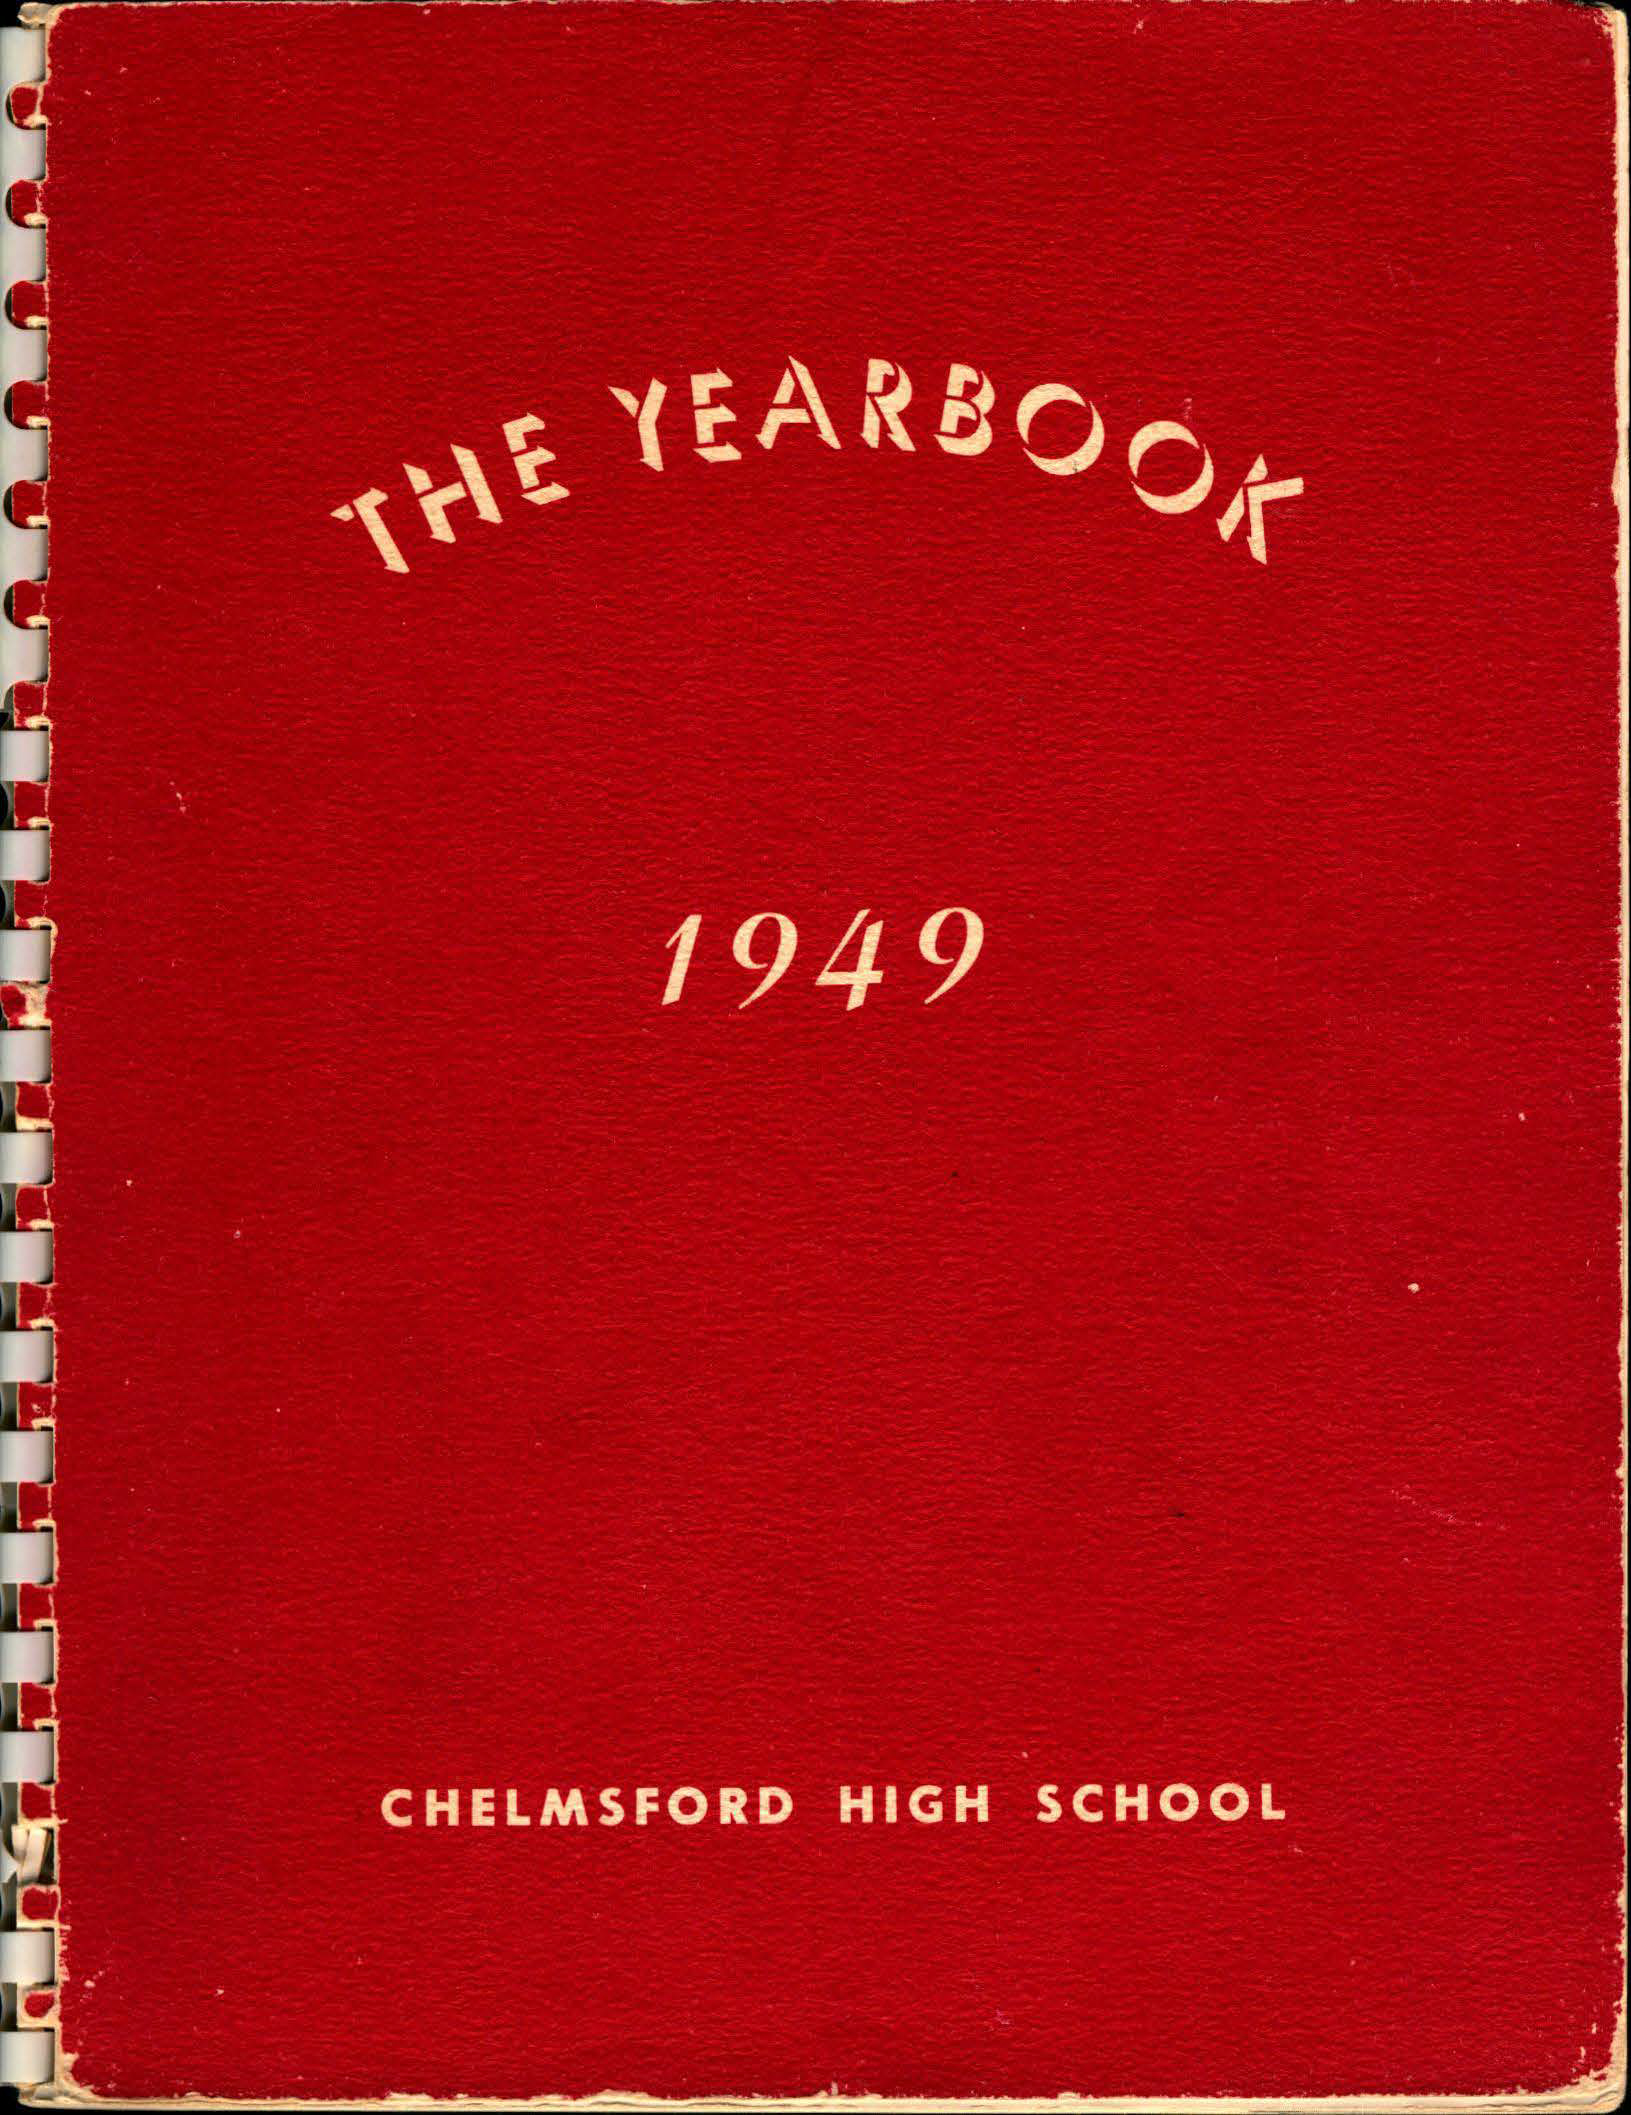 1949 Chelmsford High Yearbook 1